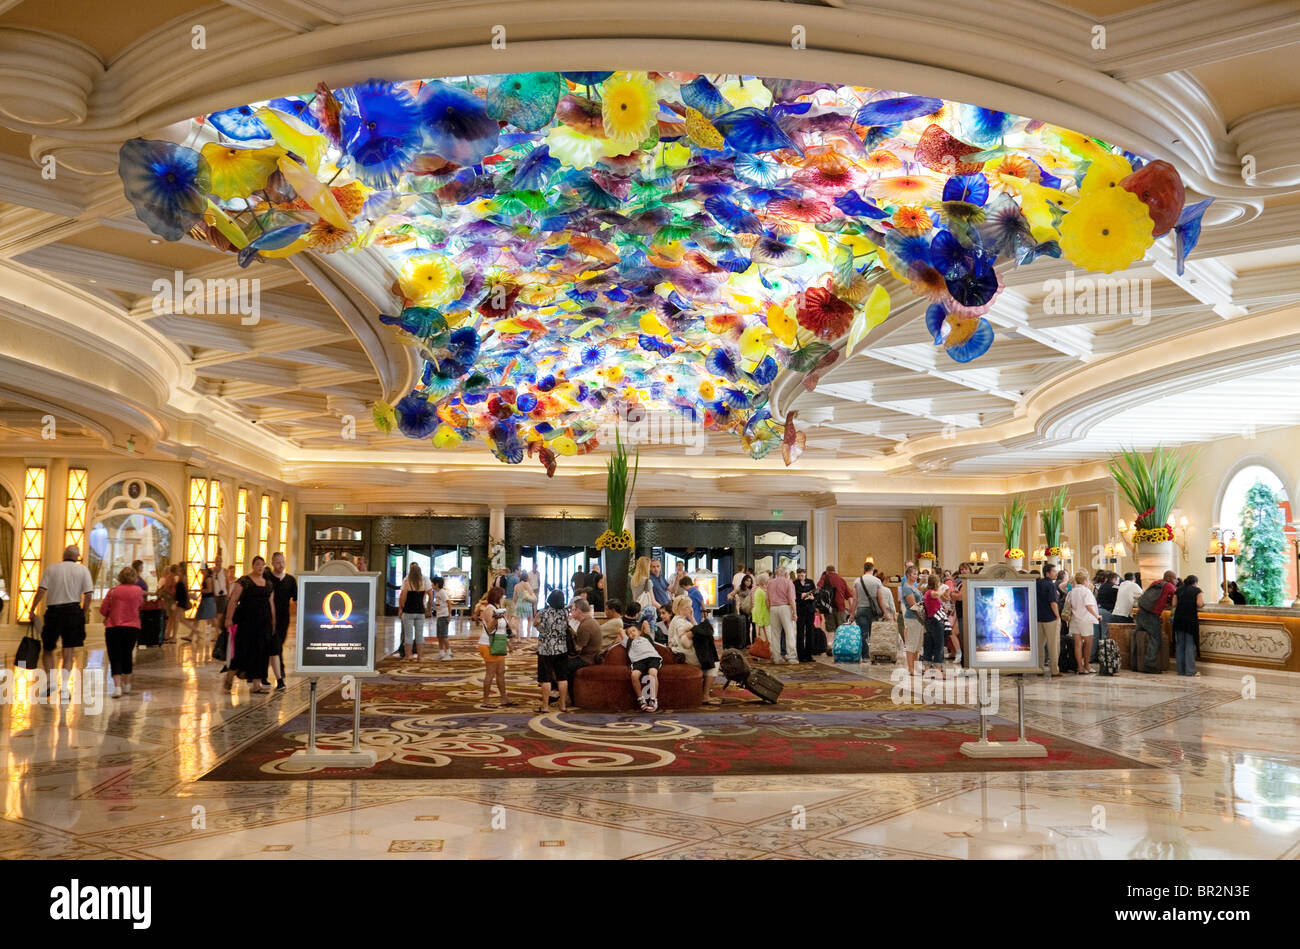 the bellagio hotel lobby with the glass ceiling sculpture. Black Bedroom Furniture Sets. Home Design Ideas